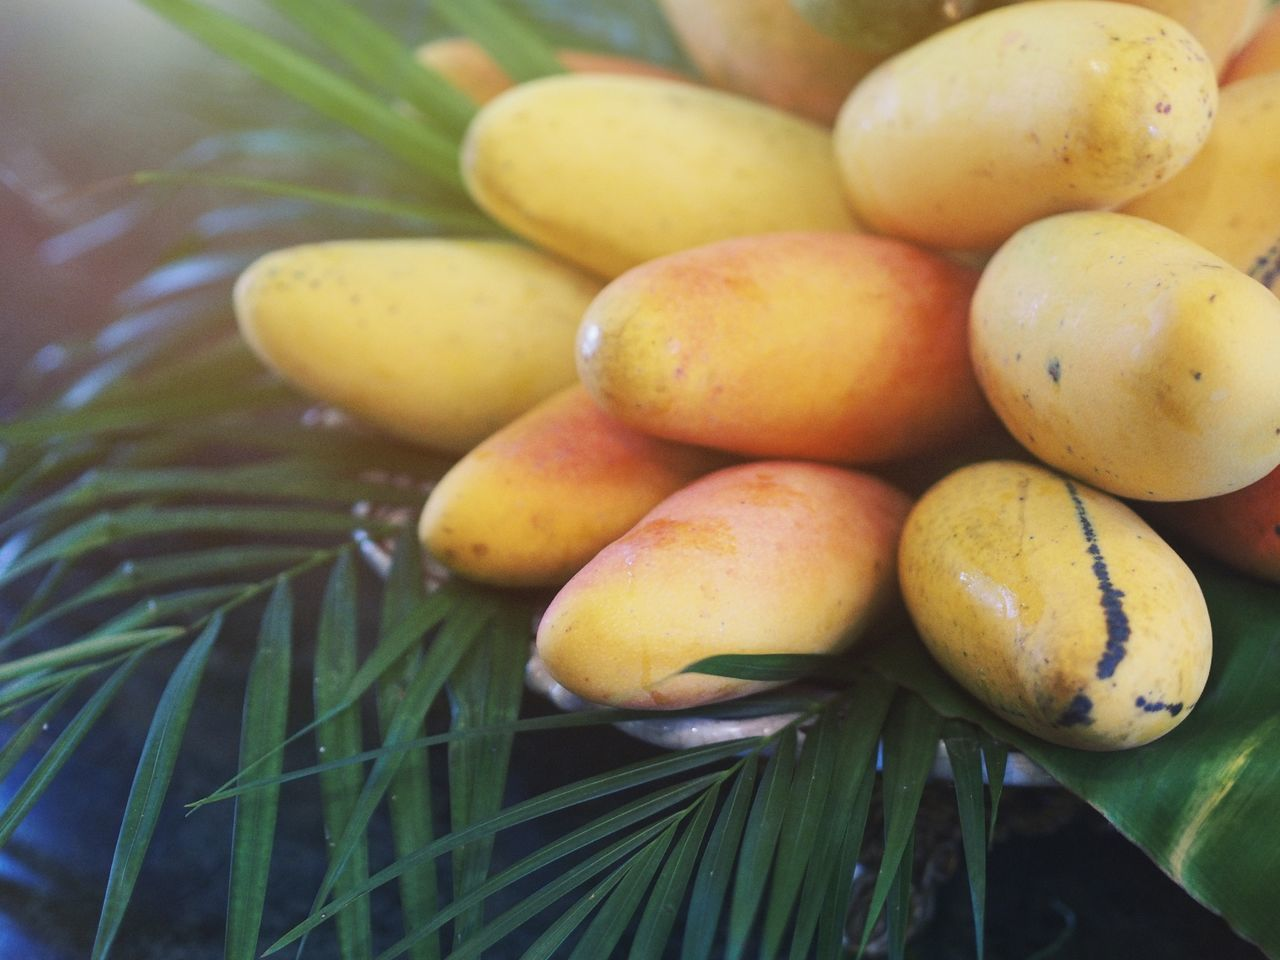 No People Food And Drink Food Close-up Freshness Indoors  Day Nature Fruit Photography Fruits ♡ Mango Mangoes Beauty In Nature Nature EyeEm Selects